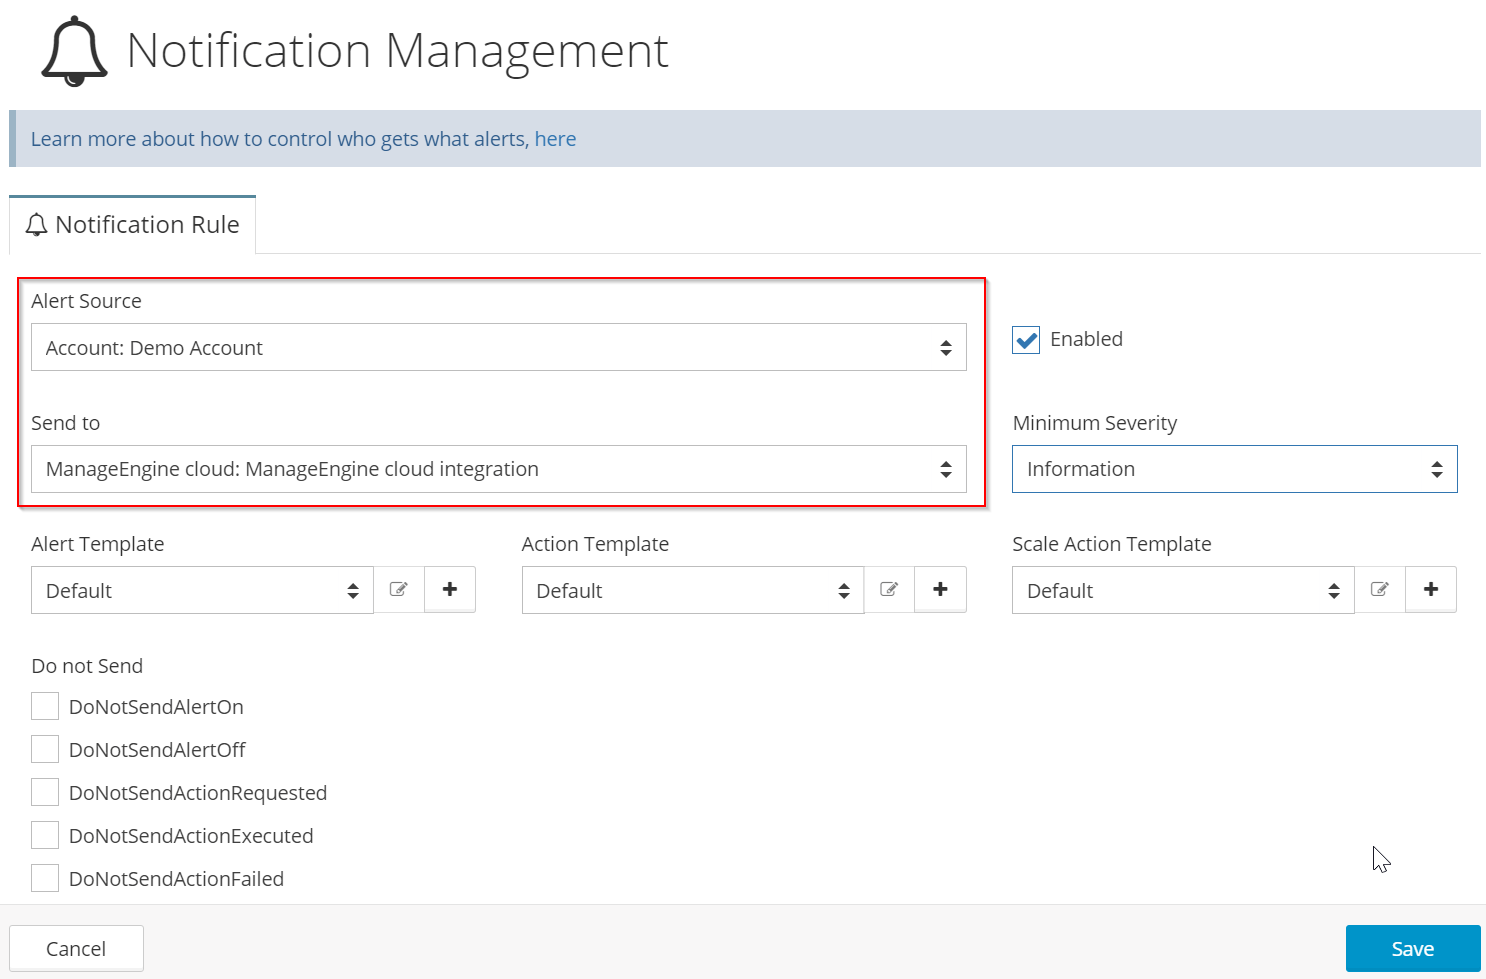 Specify what notifications should be sent to ManageEngine